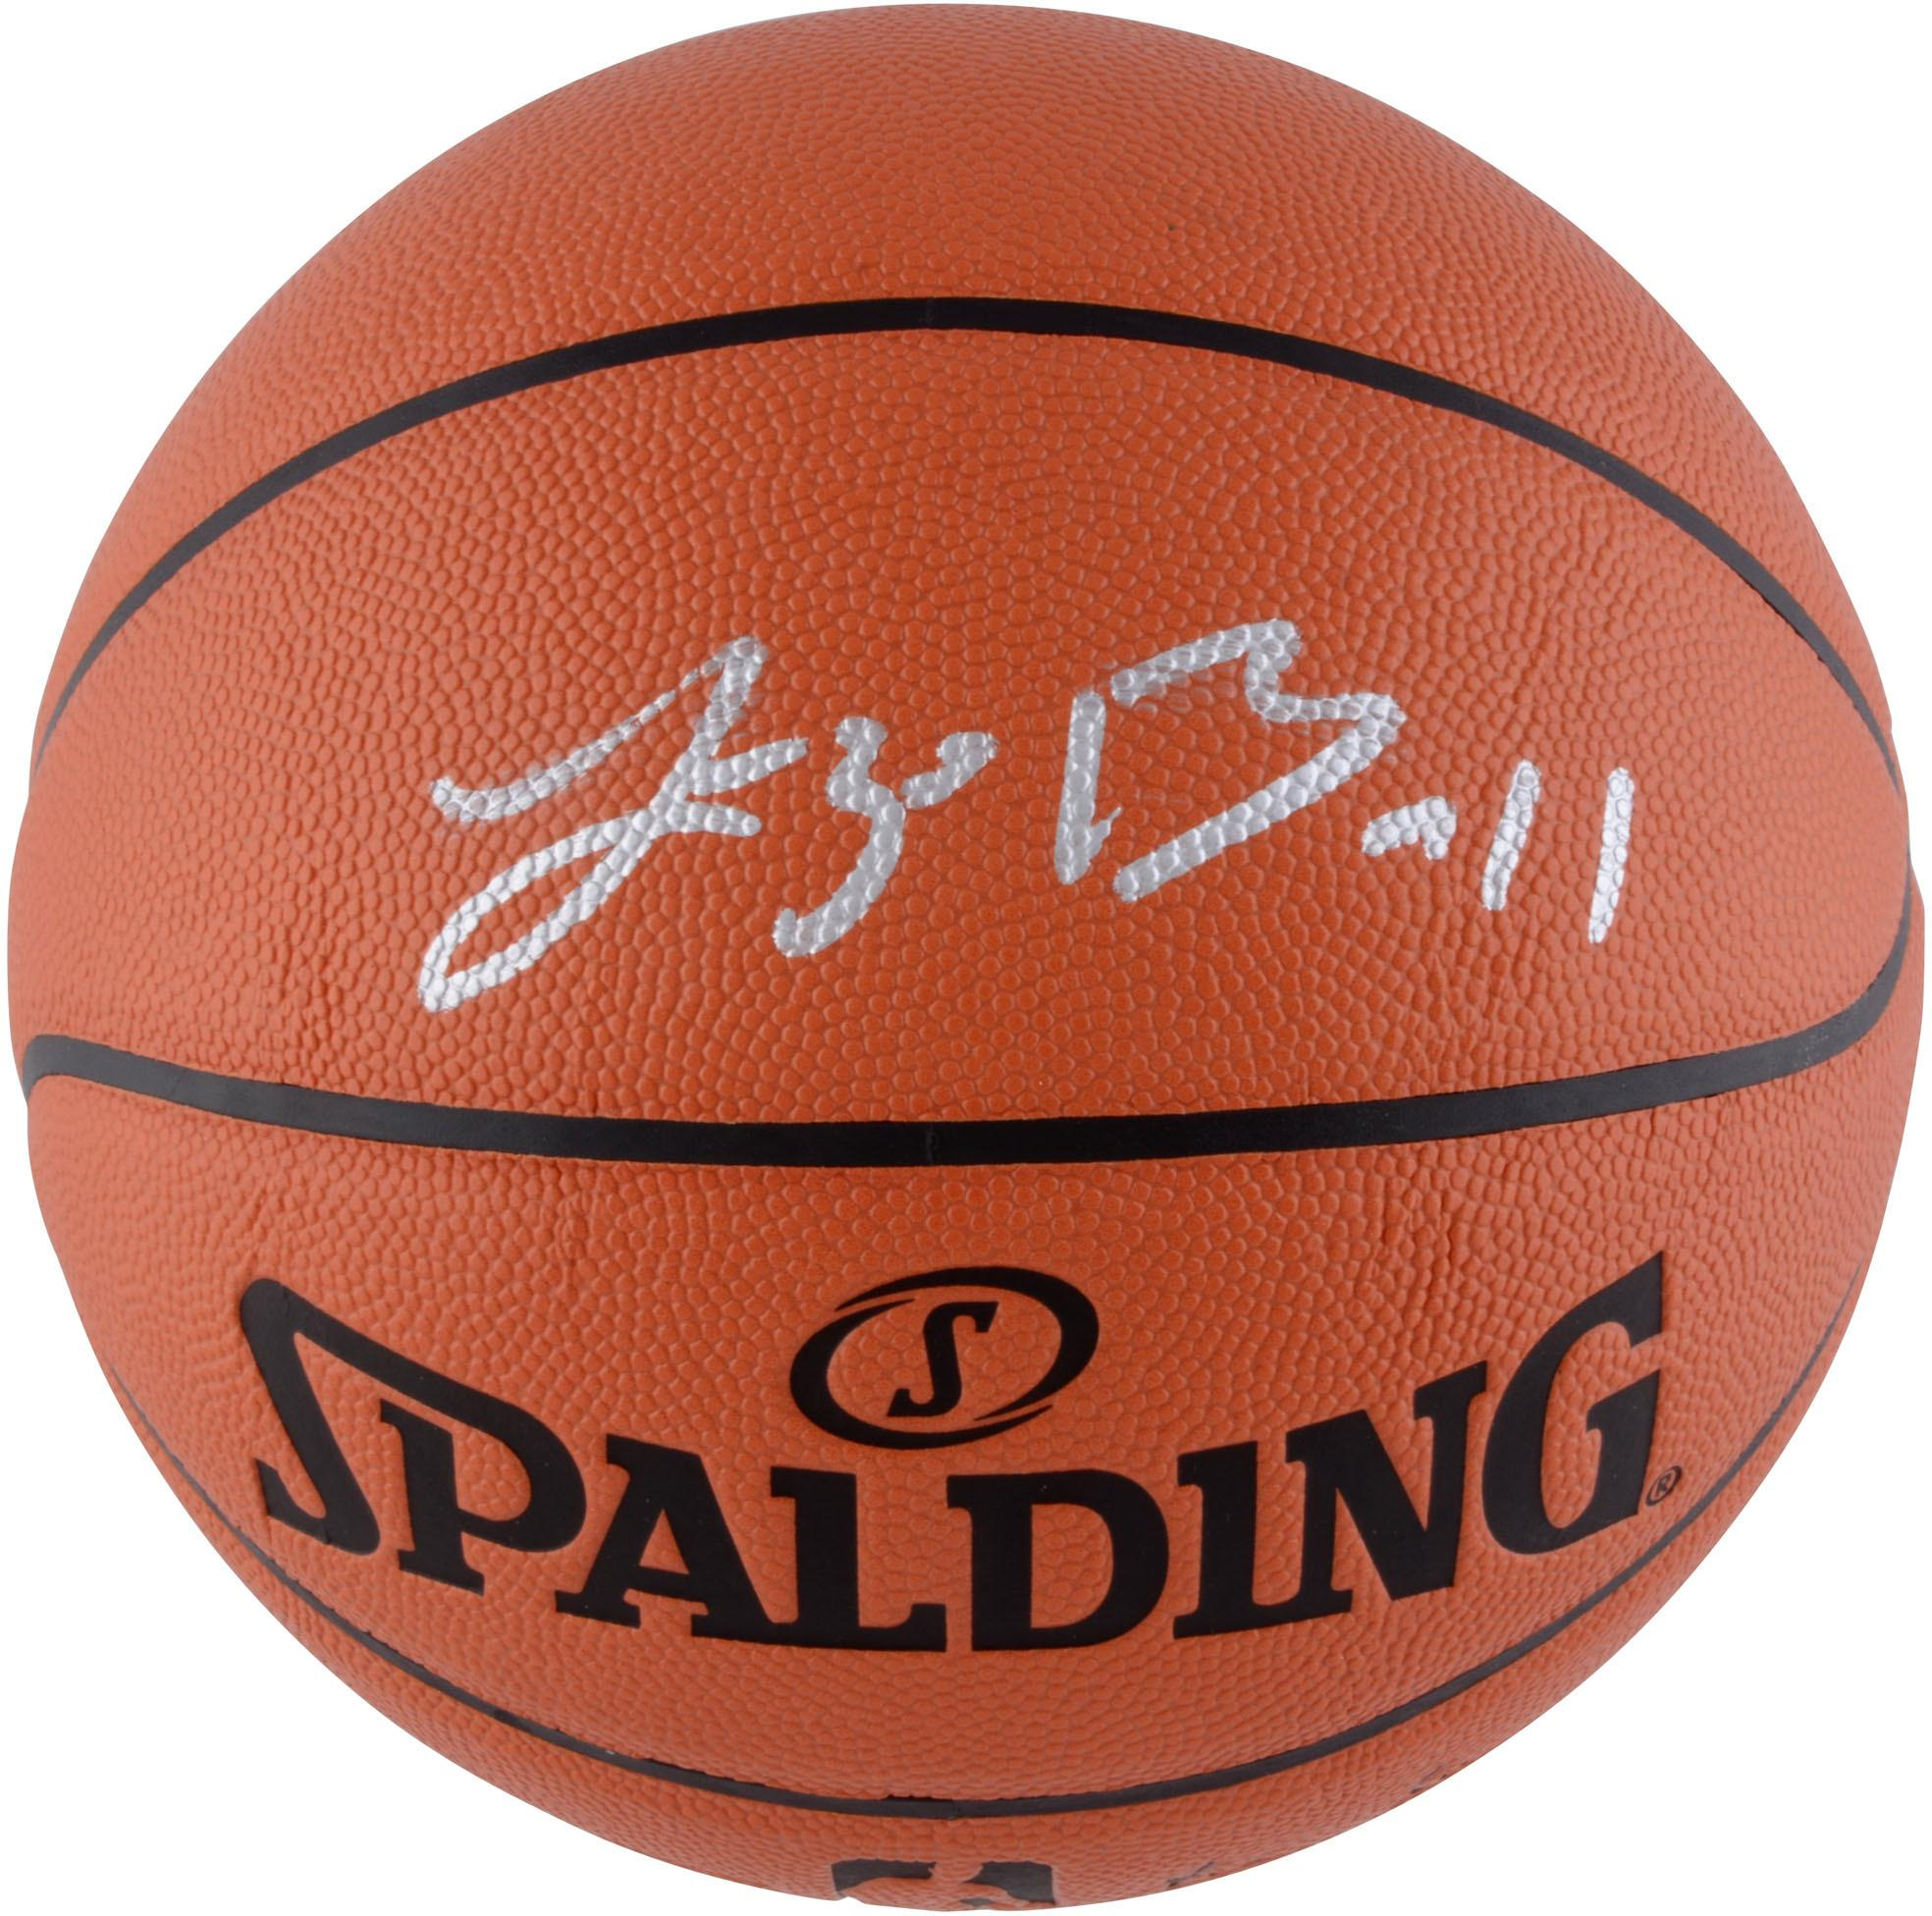 Lonzo Ball Los Angeles Lakers Autographed Indoor/Outdoor Basketball - Fanatics Authentic Certified